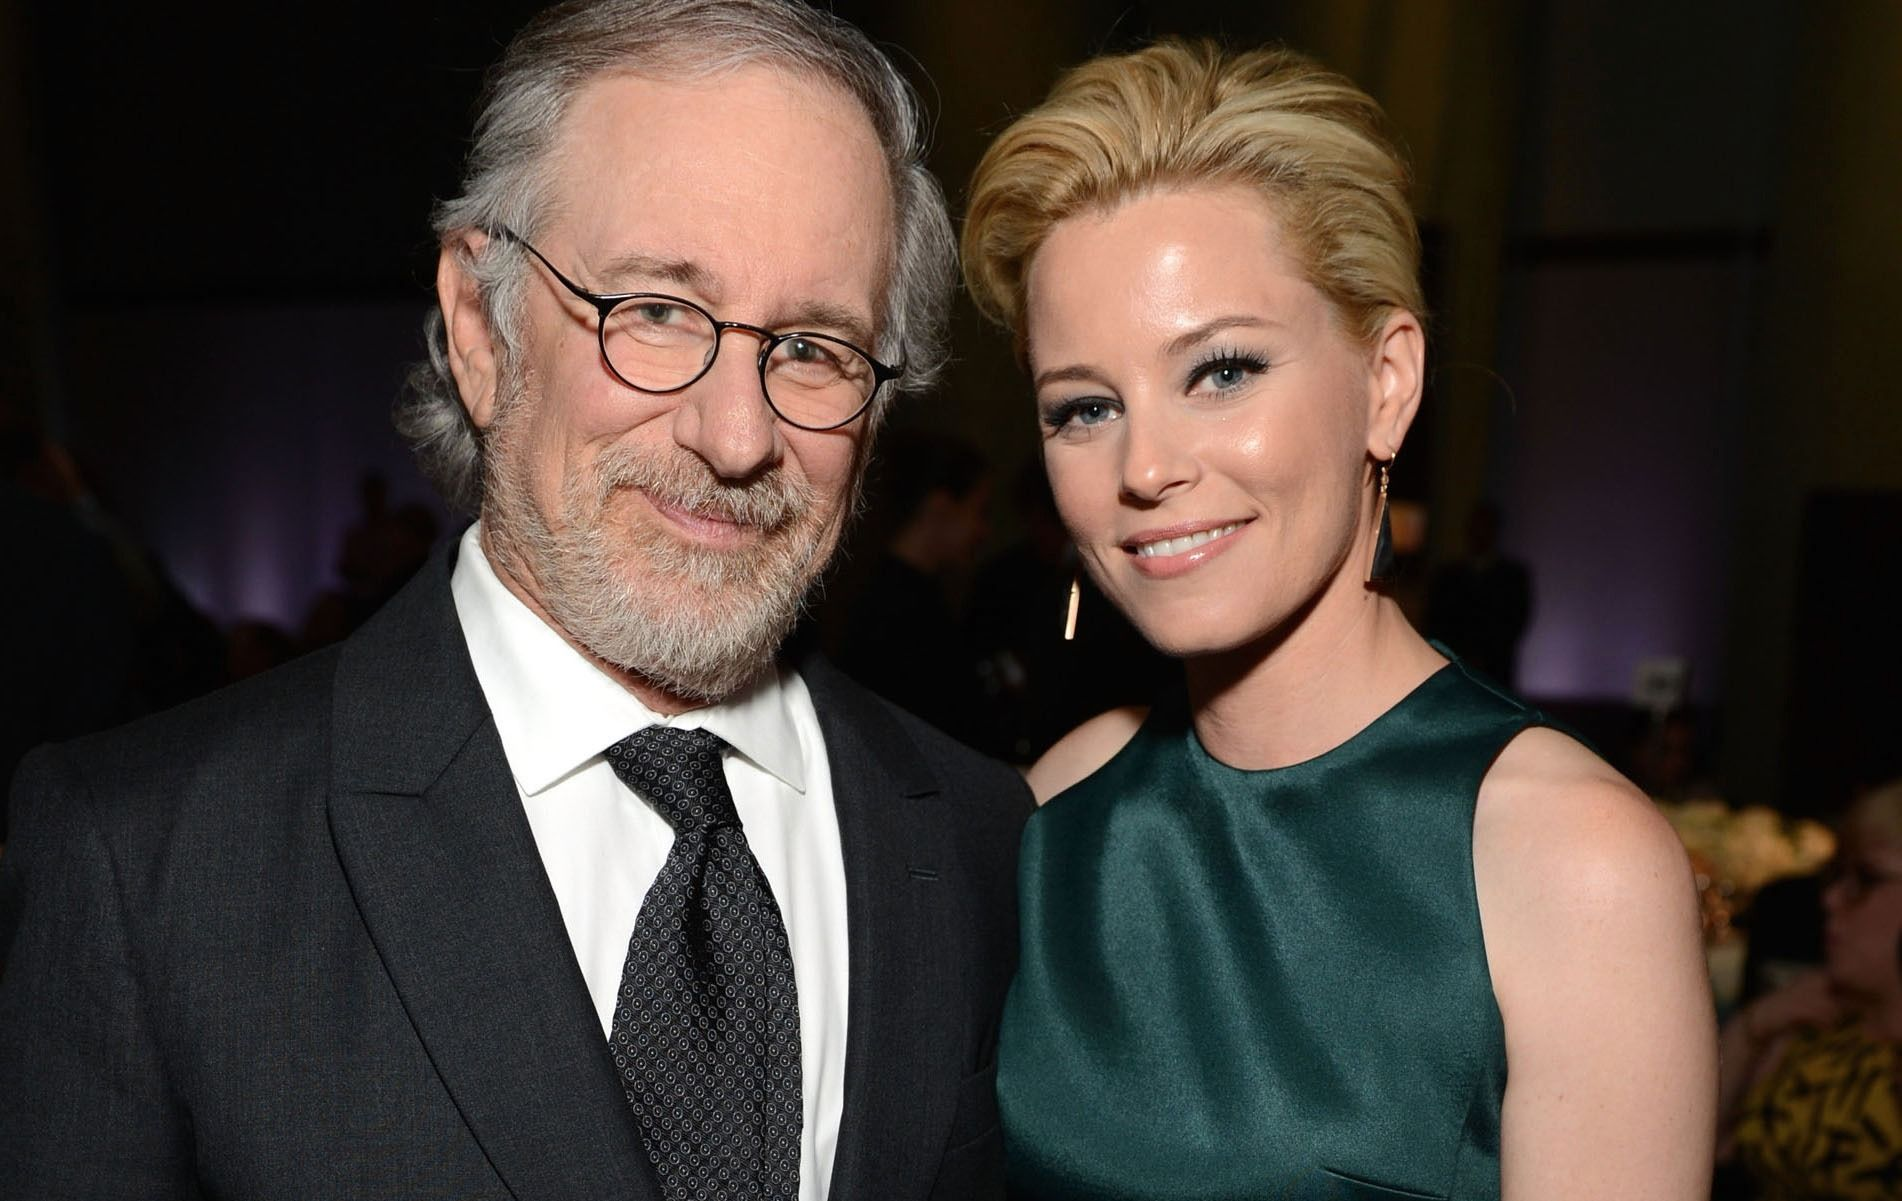 Elizabeth Banks Apologizes for Forgetting 'The Color Purple' in Steven Spielberg Comments